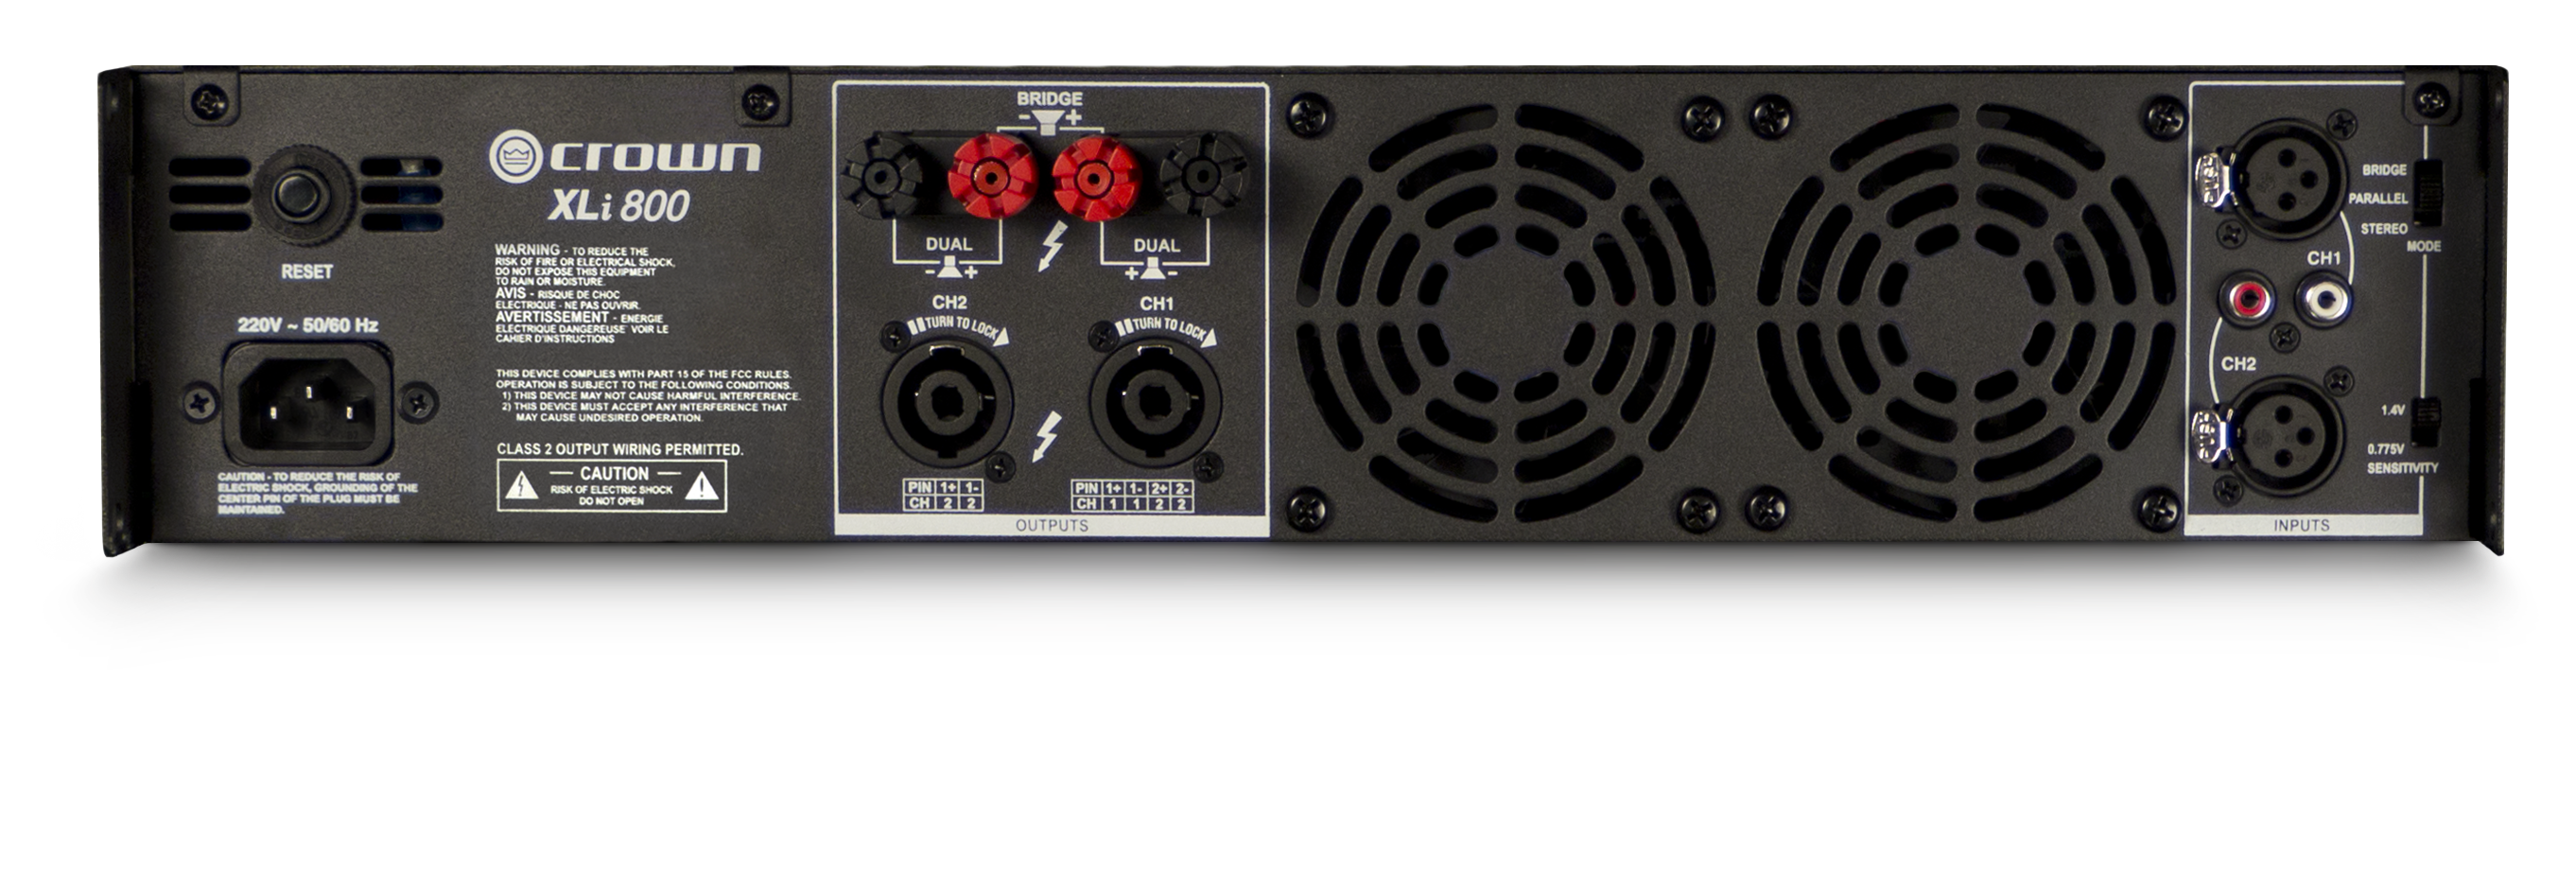 Class A Power Amplifier With 60 Watts Output Xli 800 Crown Audio Professional Amplifiers